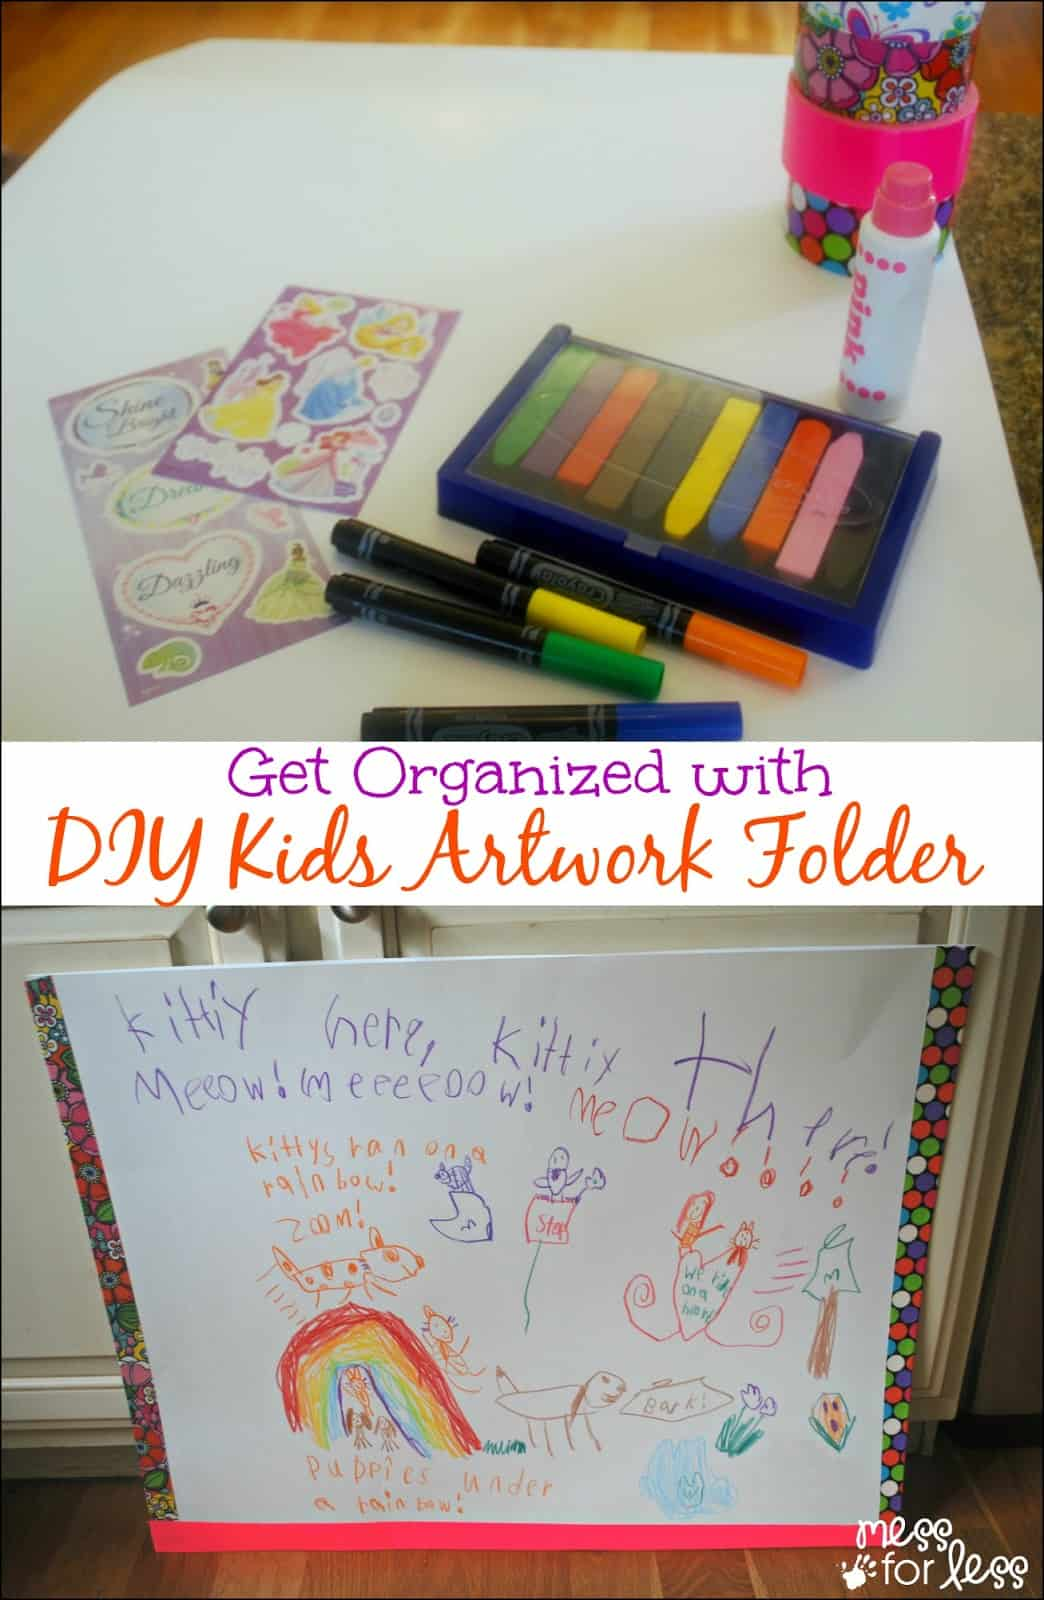 Get Organized with a DIY Kids Artwork Folder - a simple and fun way for kids to create a folder for all those papers!